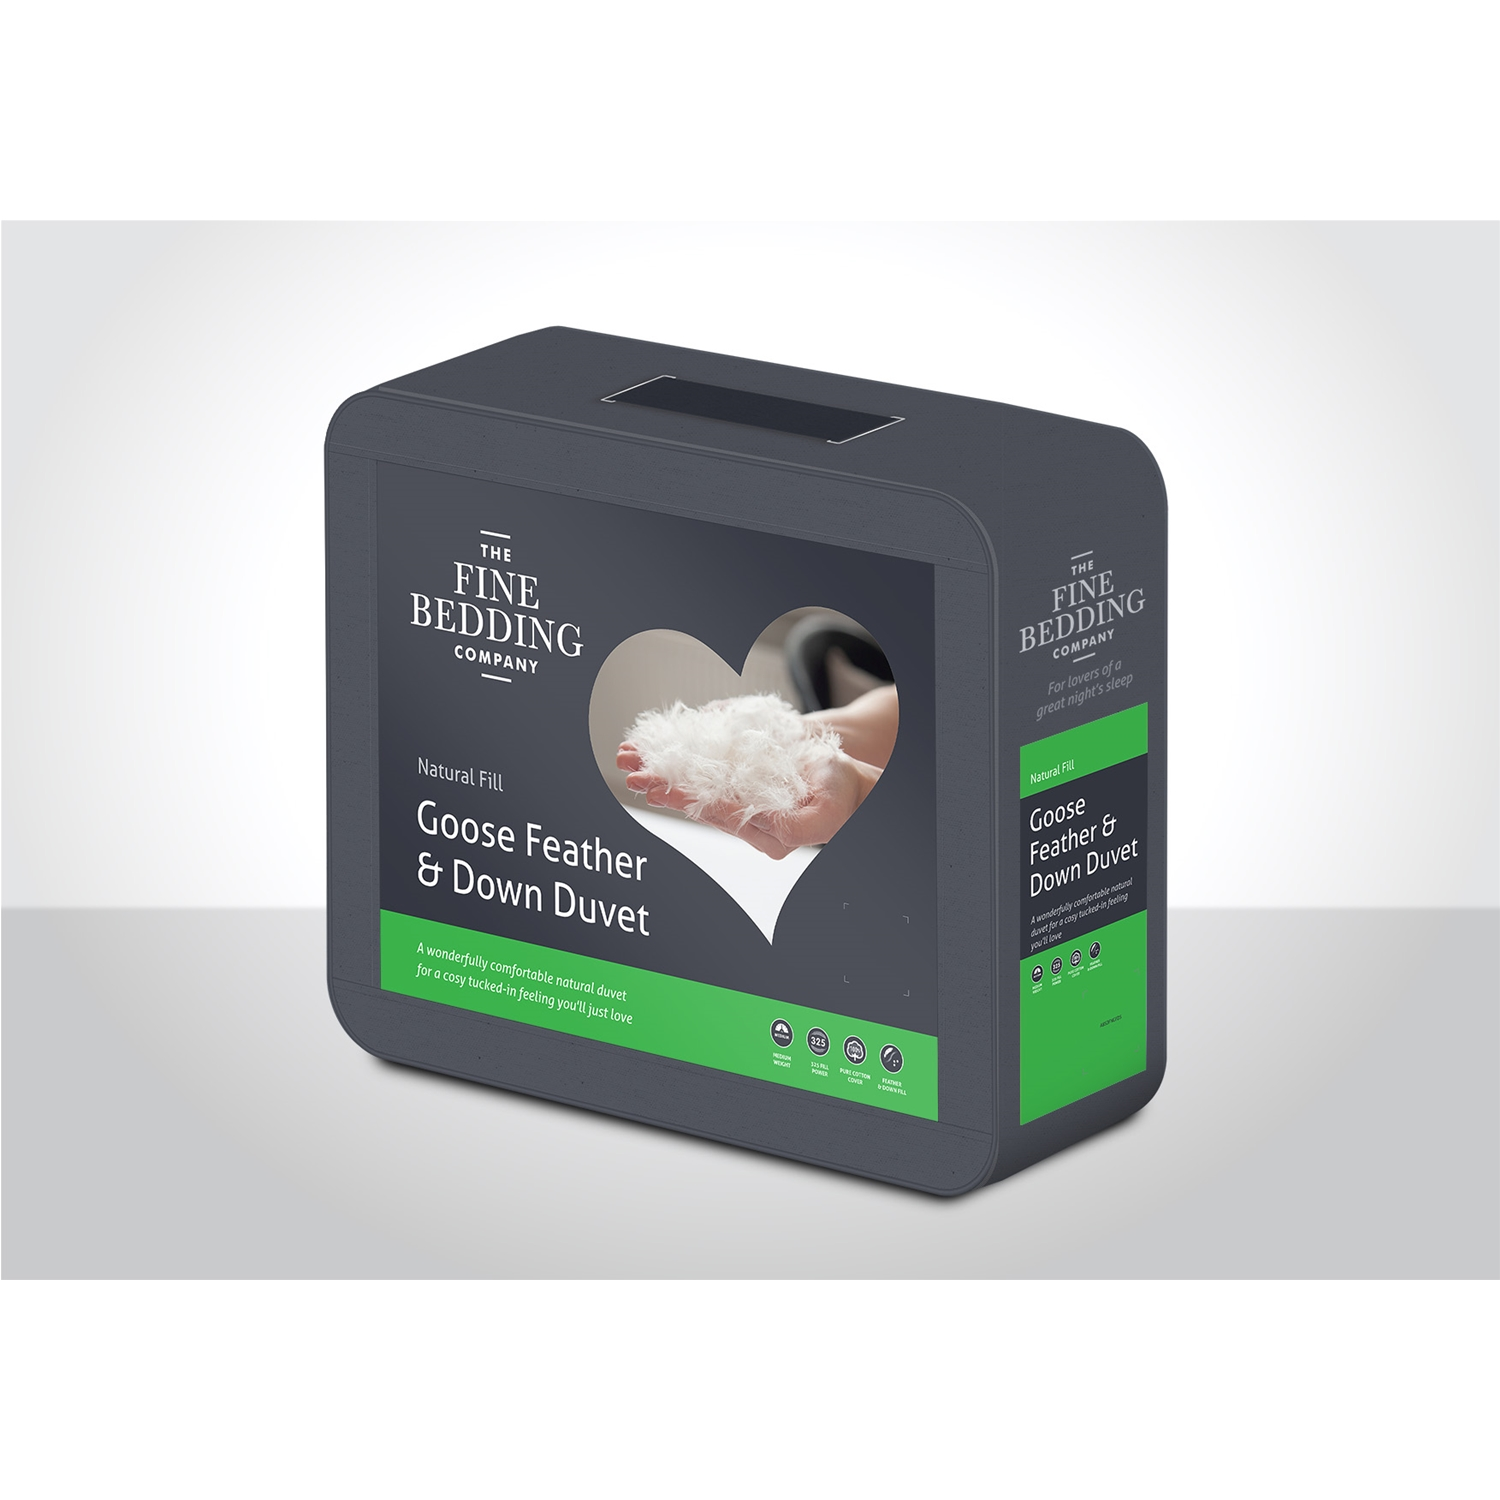 Image of Fine Bedding Company Goose Feather & Down Duvet, 10.5 Tog, Double